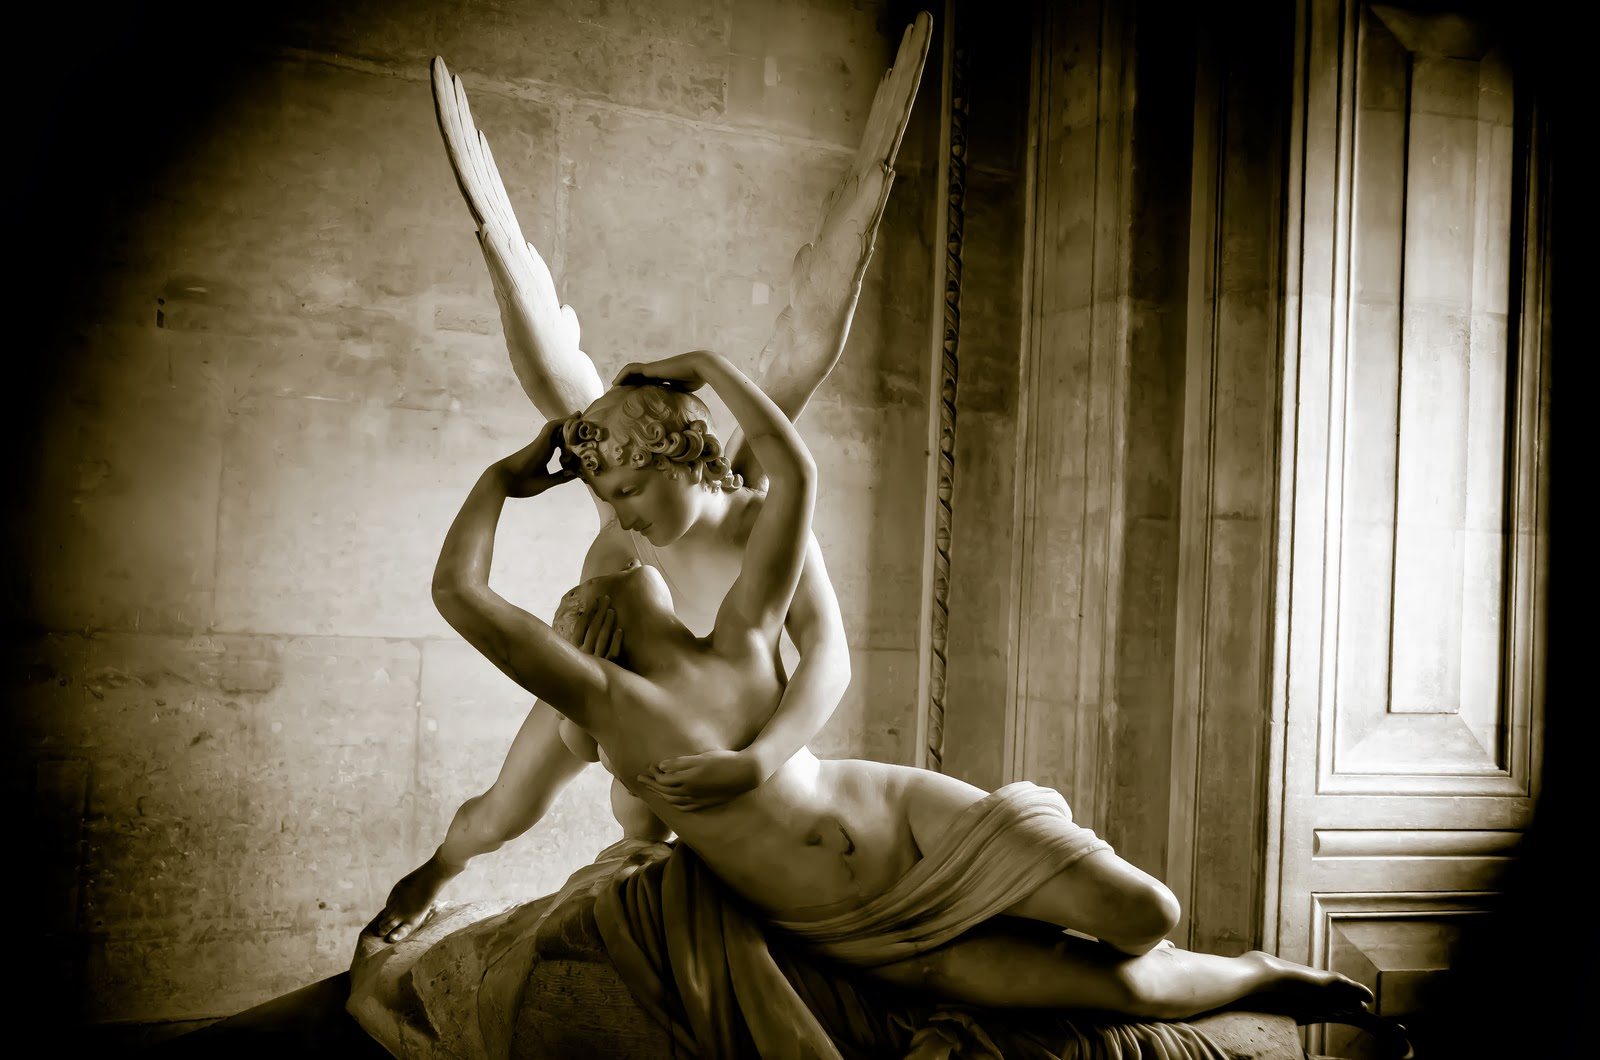 Who was god Eros? The myth and his love for Psyche